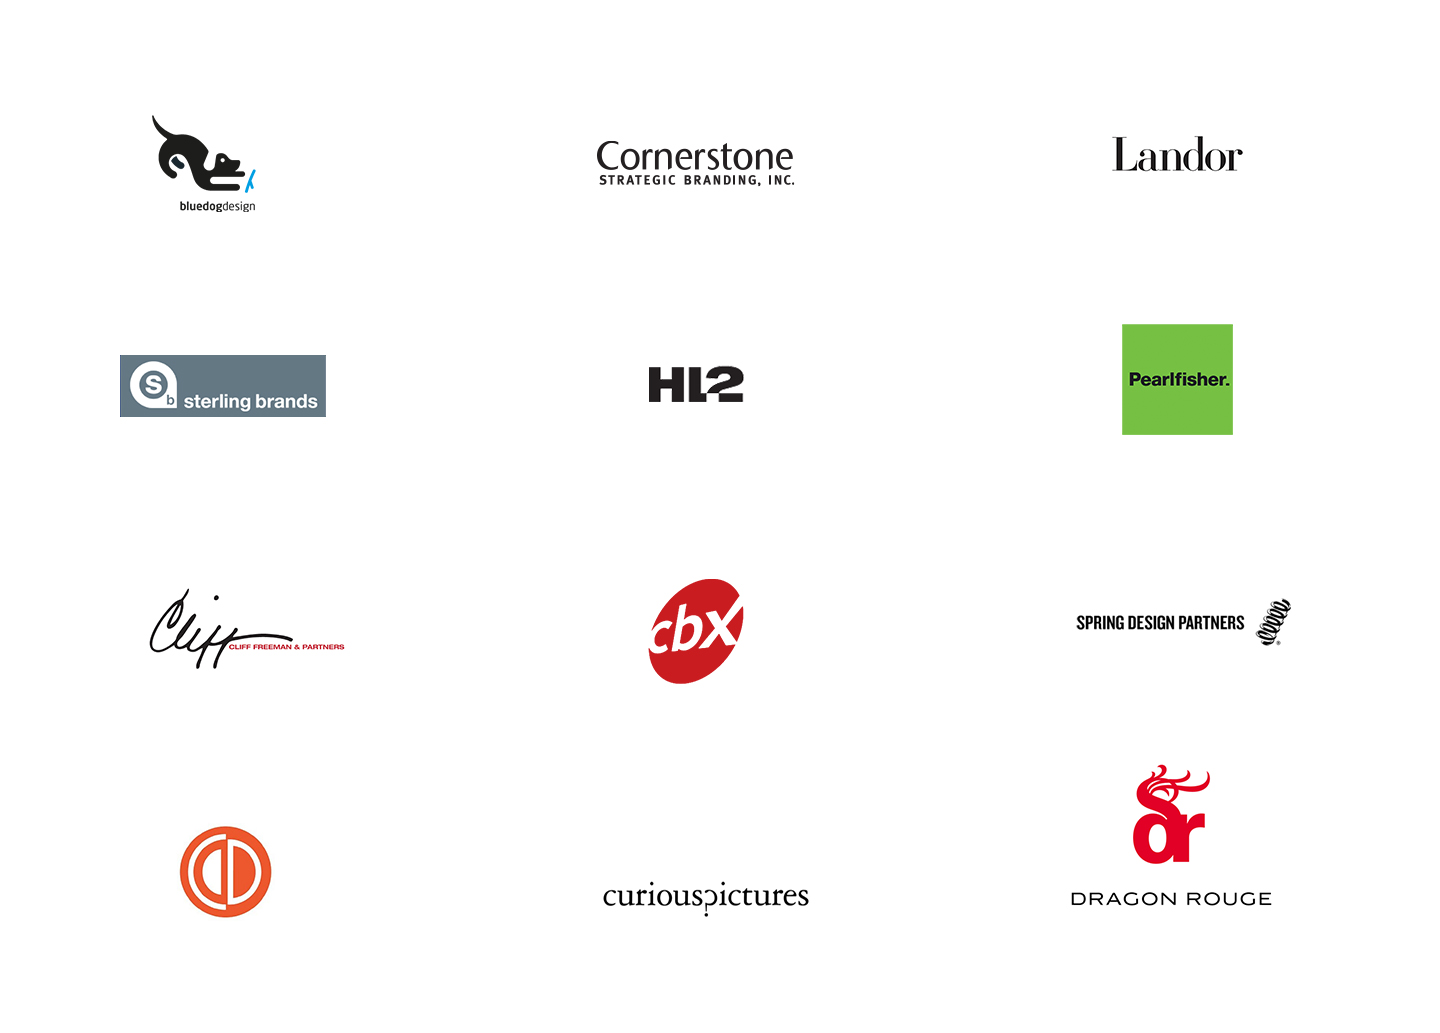 A sample of creative agency clients